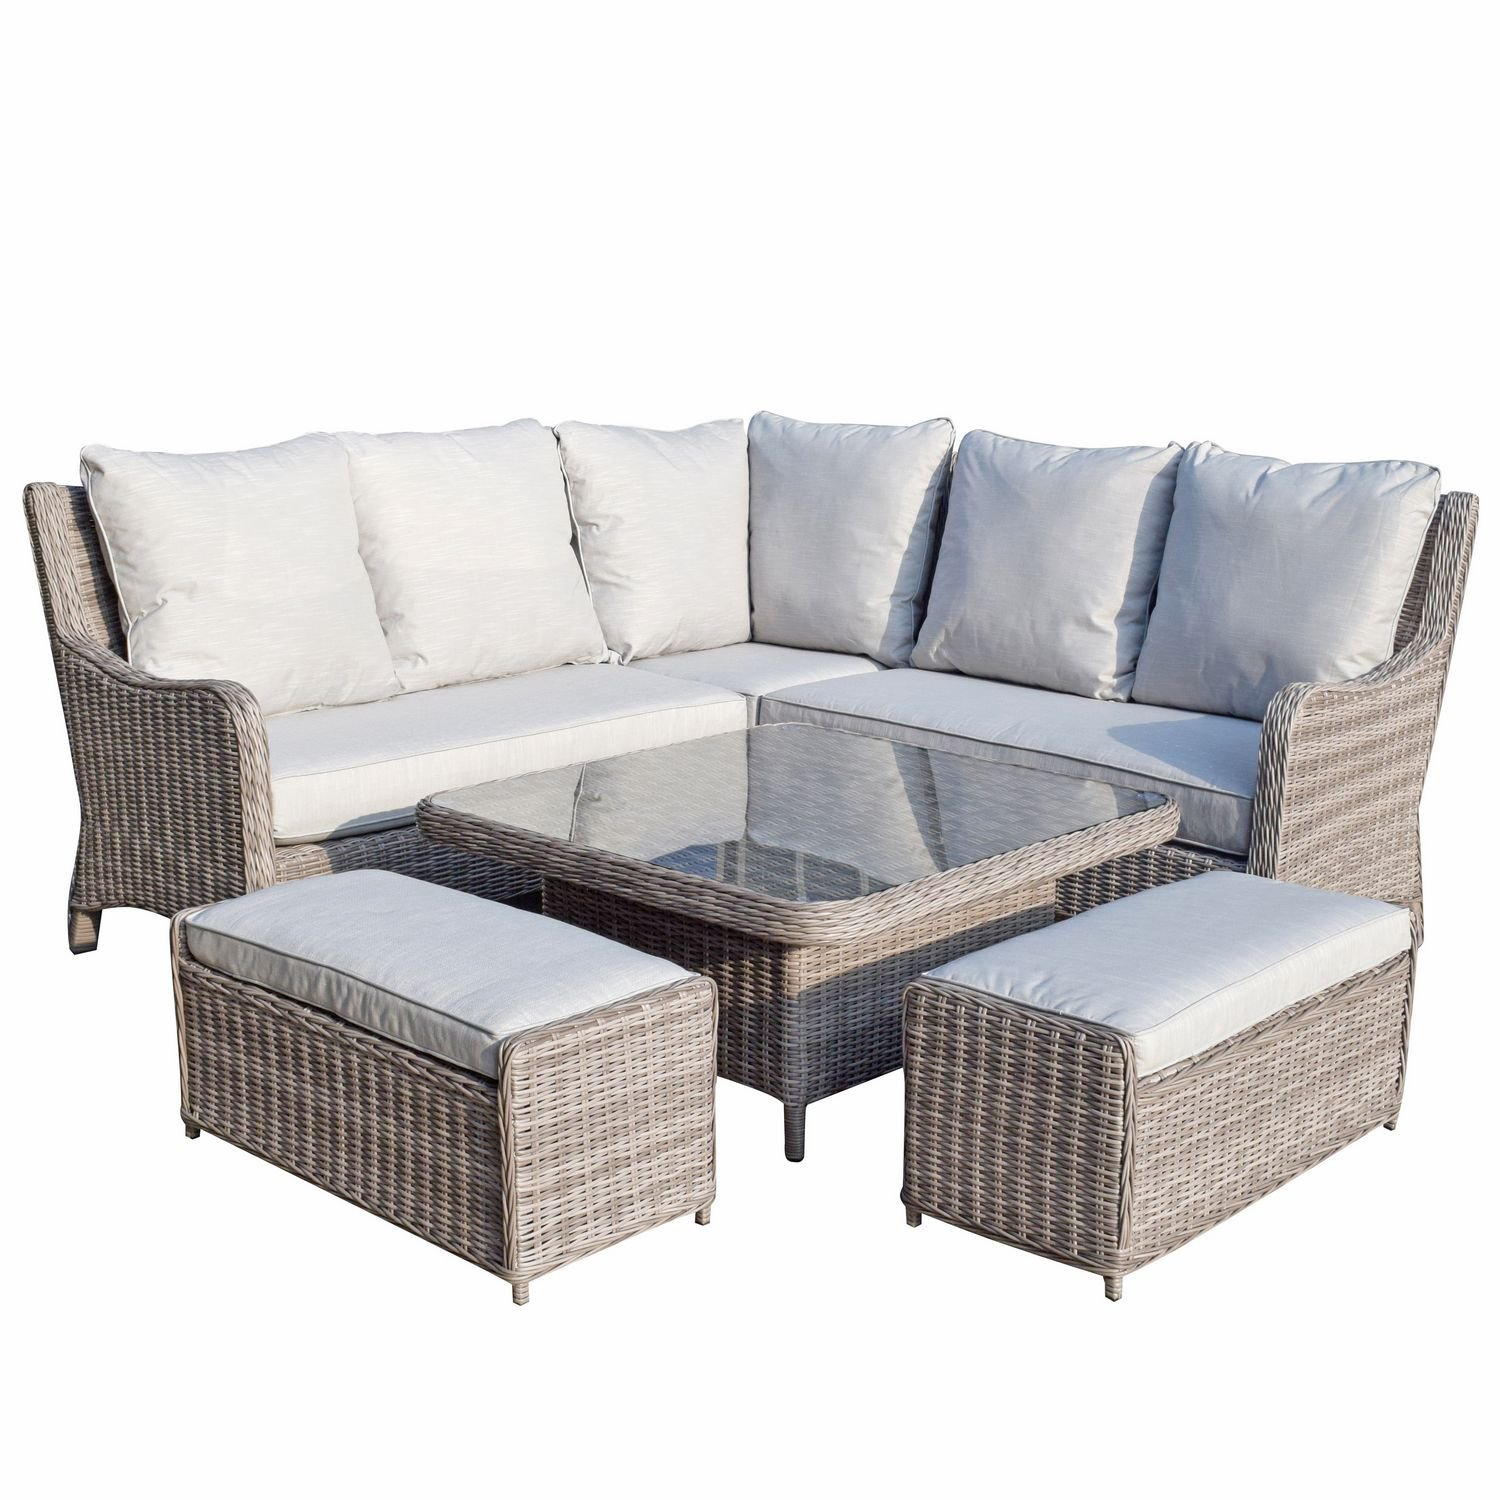 image-Signature Weave Garden Furniture Alexandra Corner Dining Sofa Set